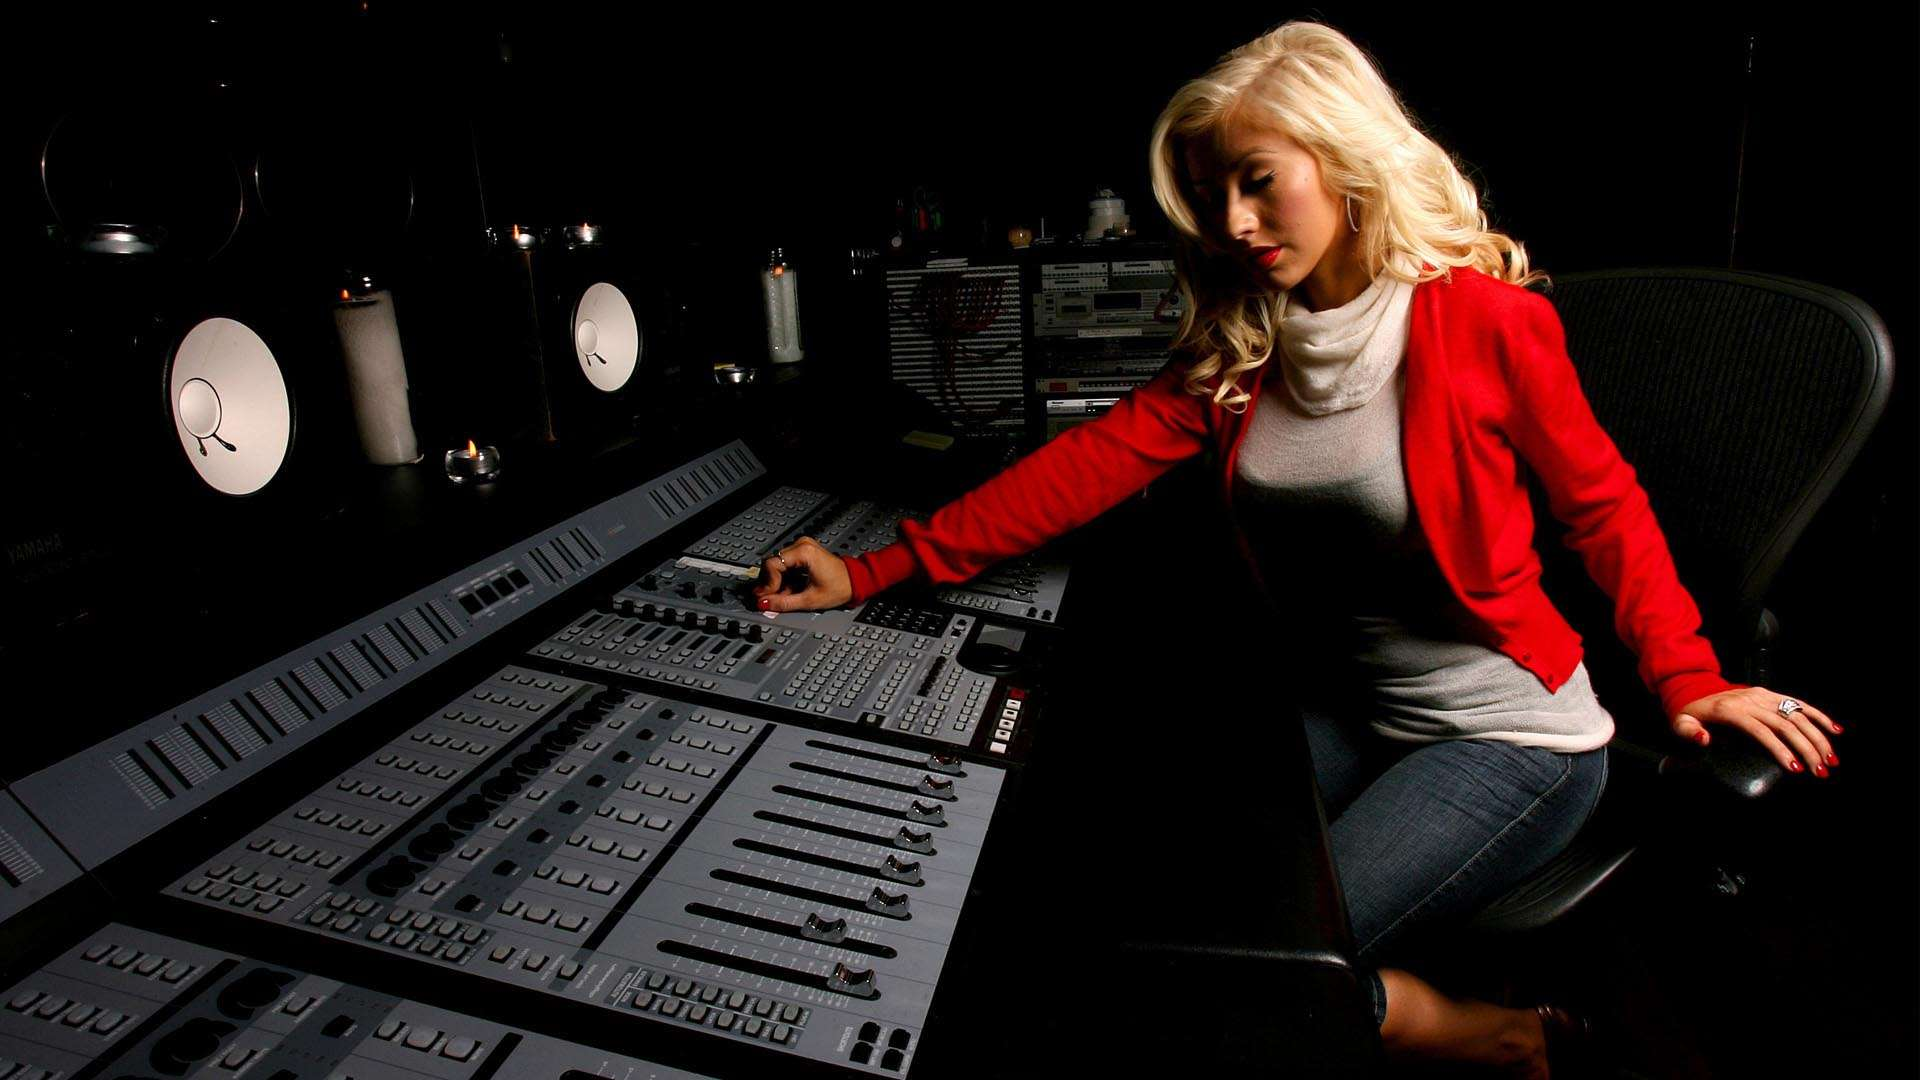 Christina Aguilera Mixing HD Wallpaper FullHDWpp   Full HD 1920x1080